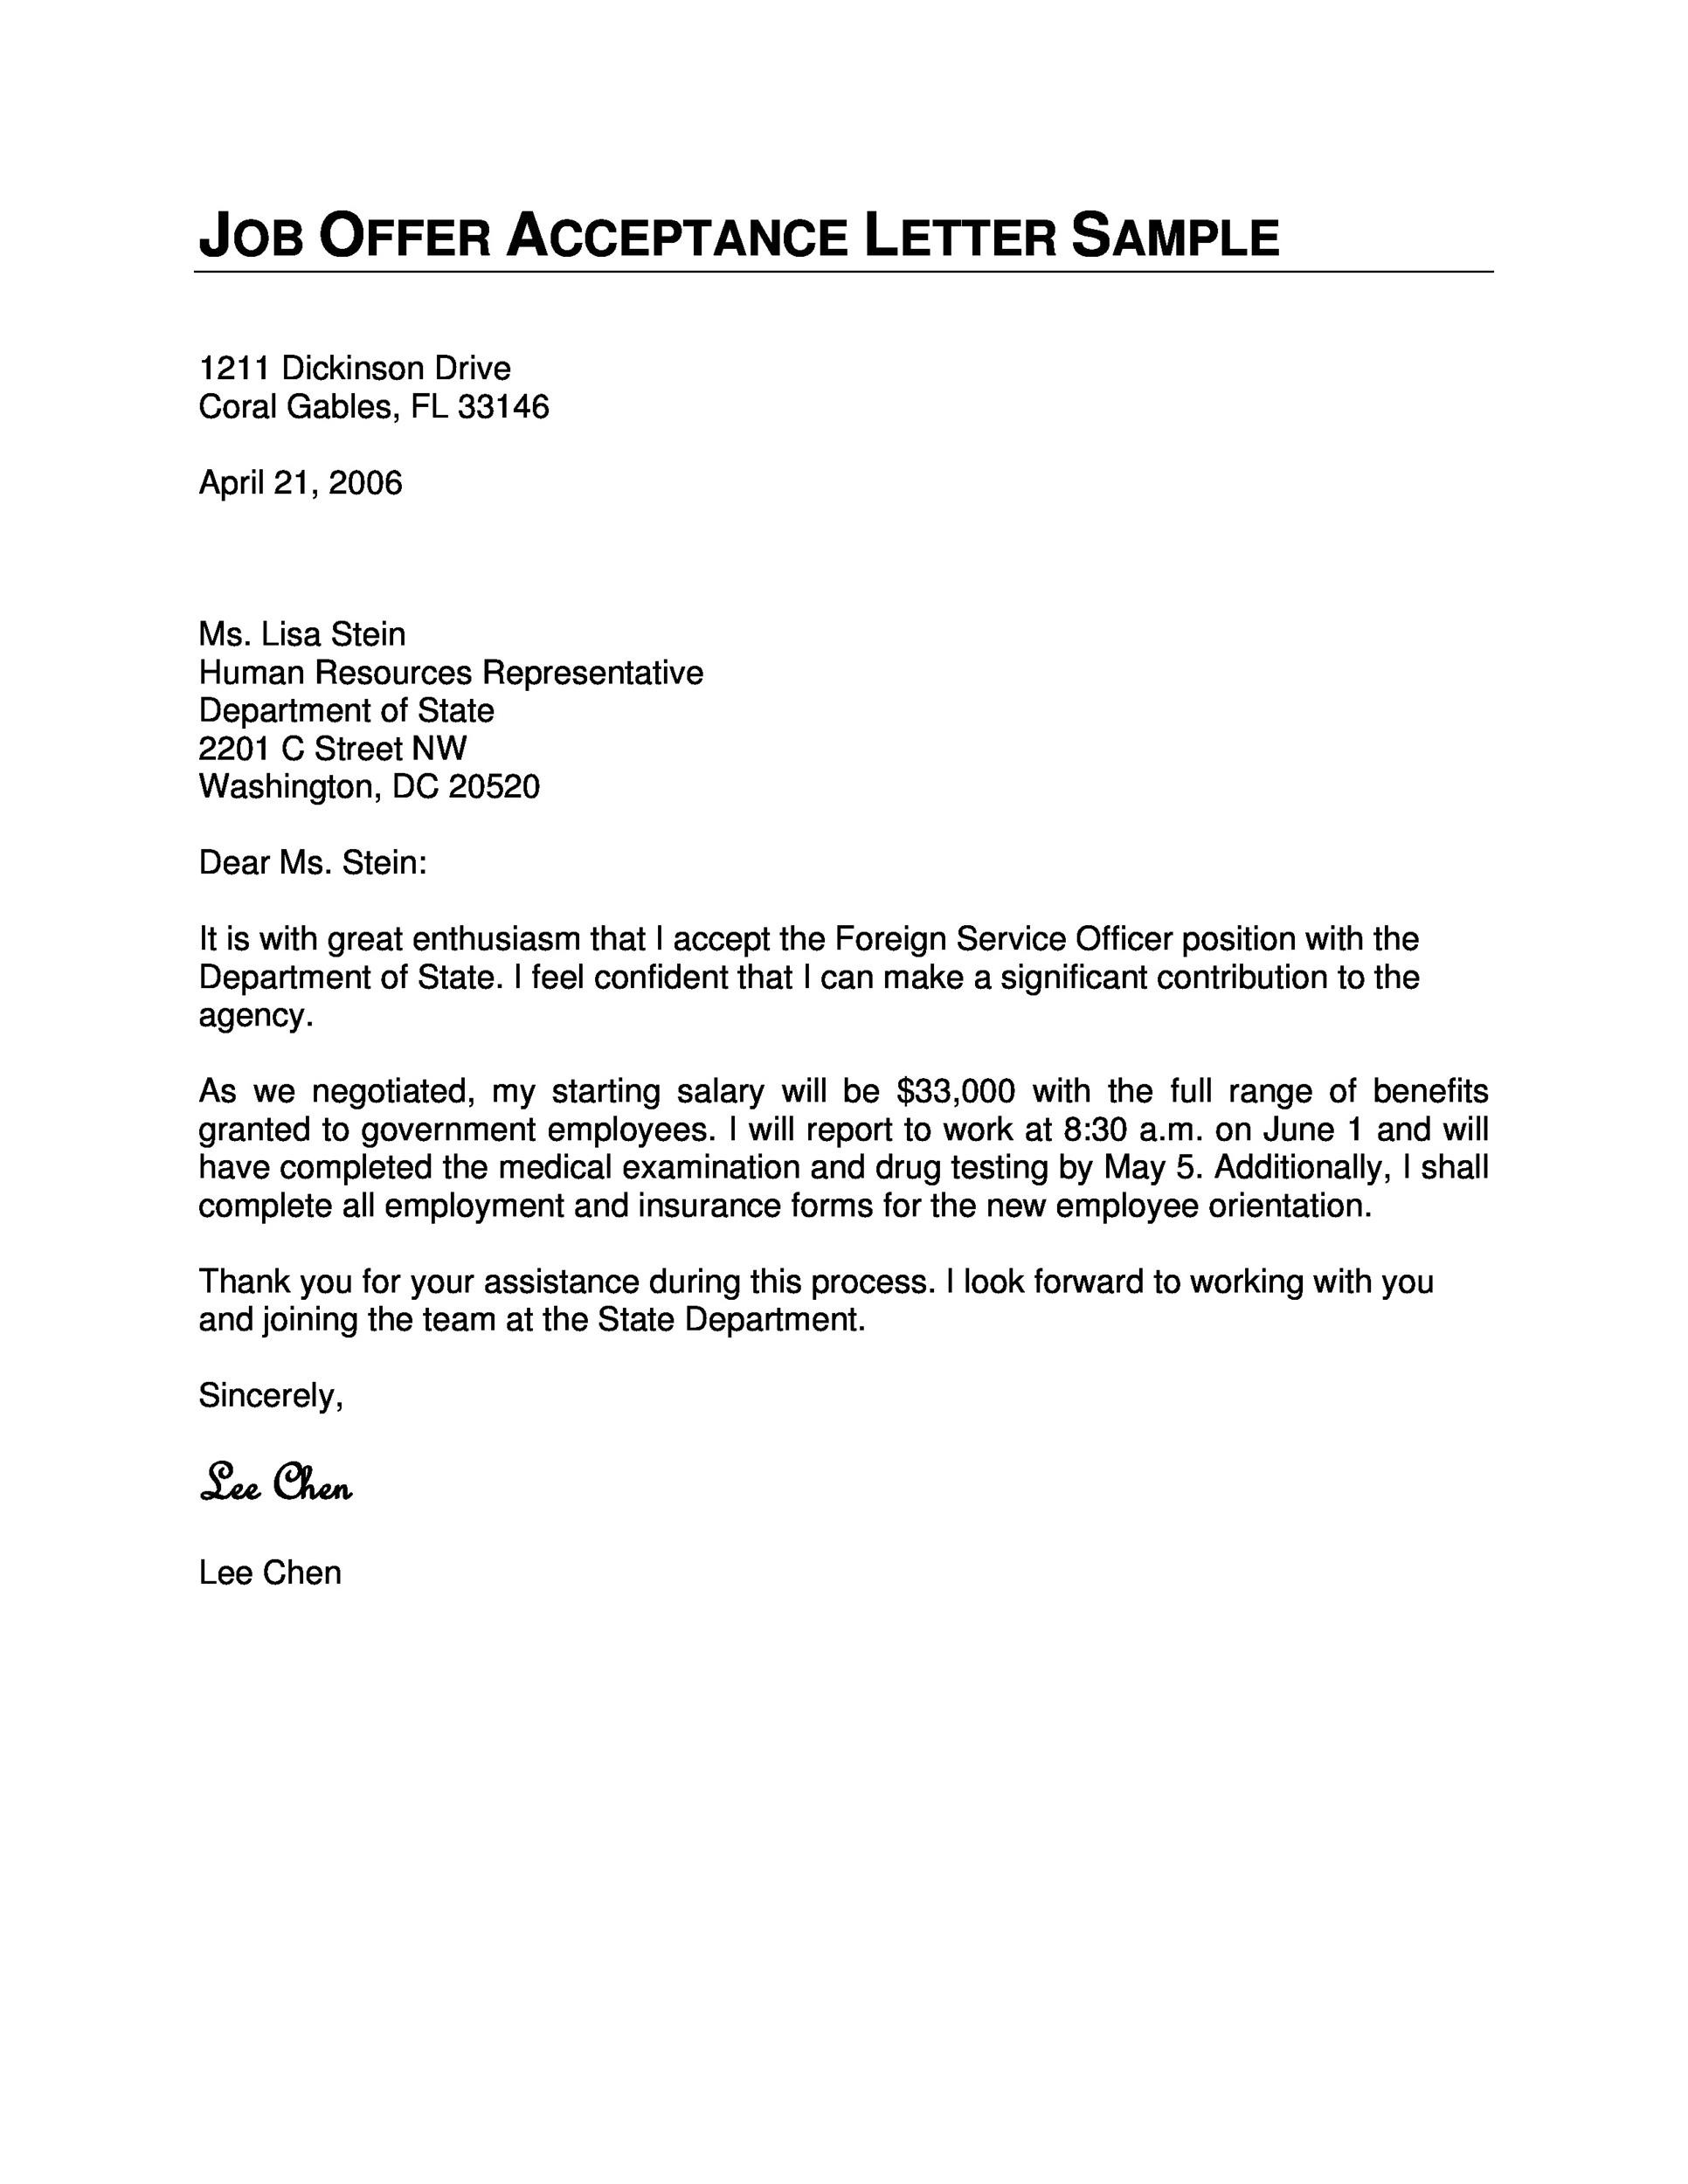 Employee Referral Cover Letter Image collections Cover Letter Sample